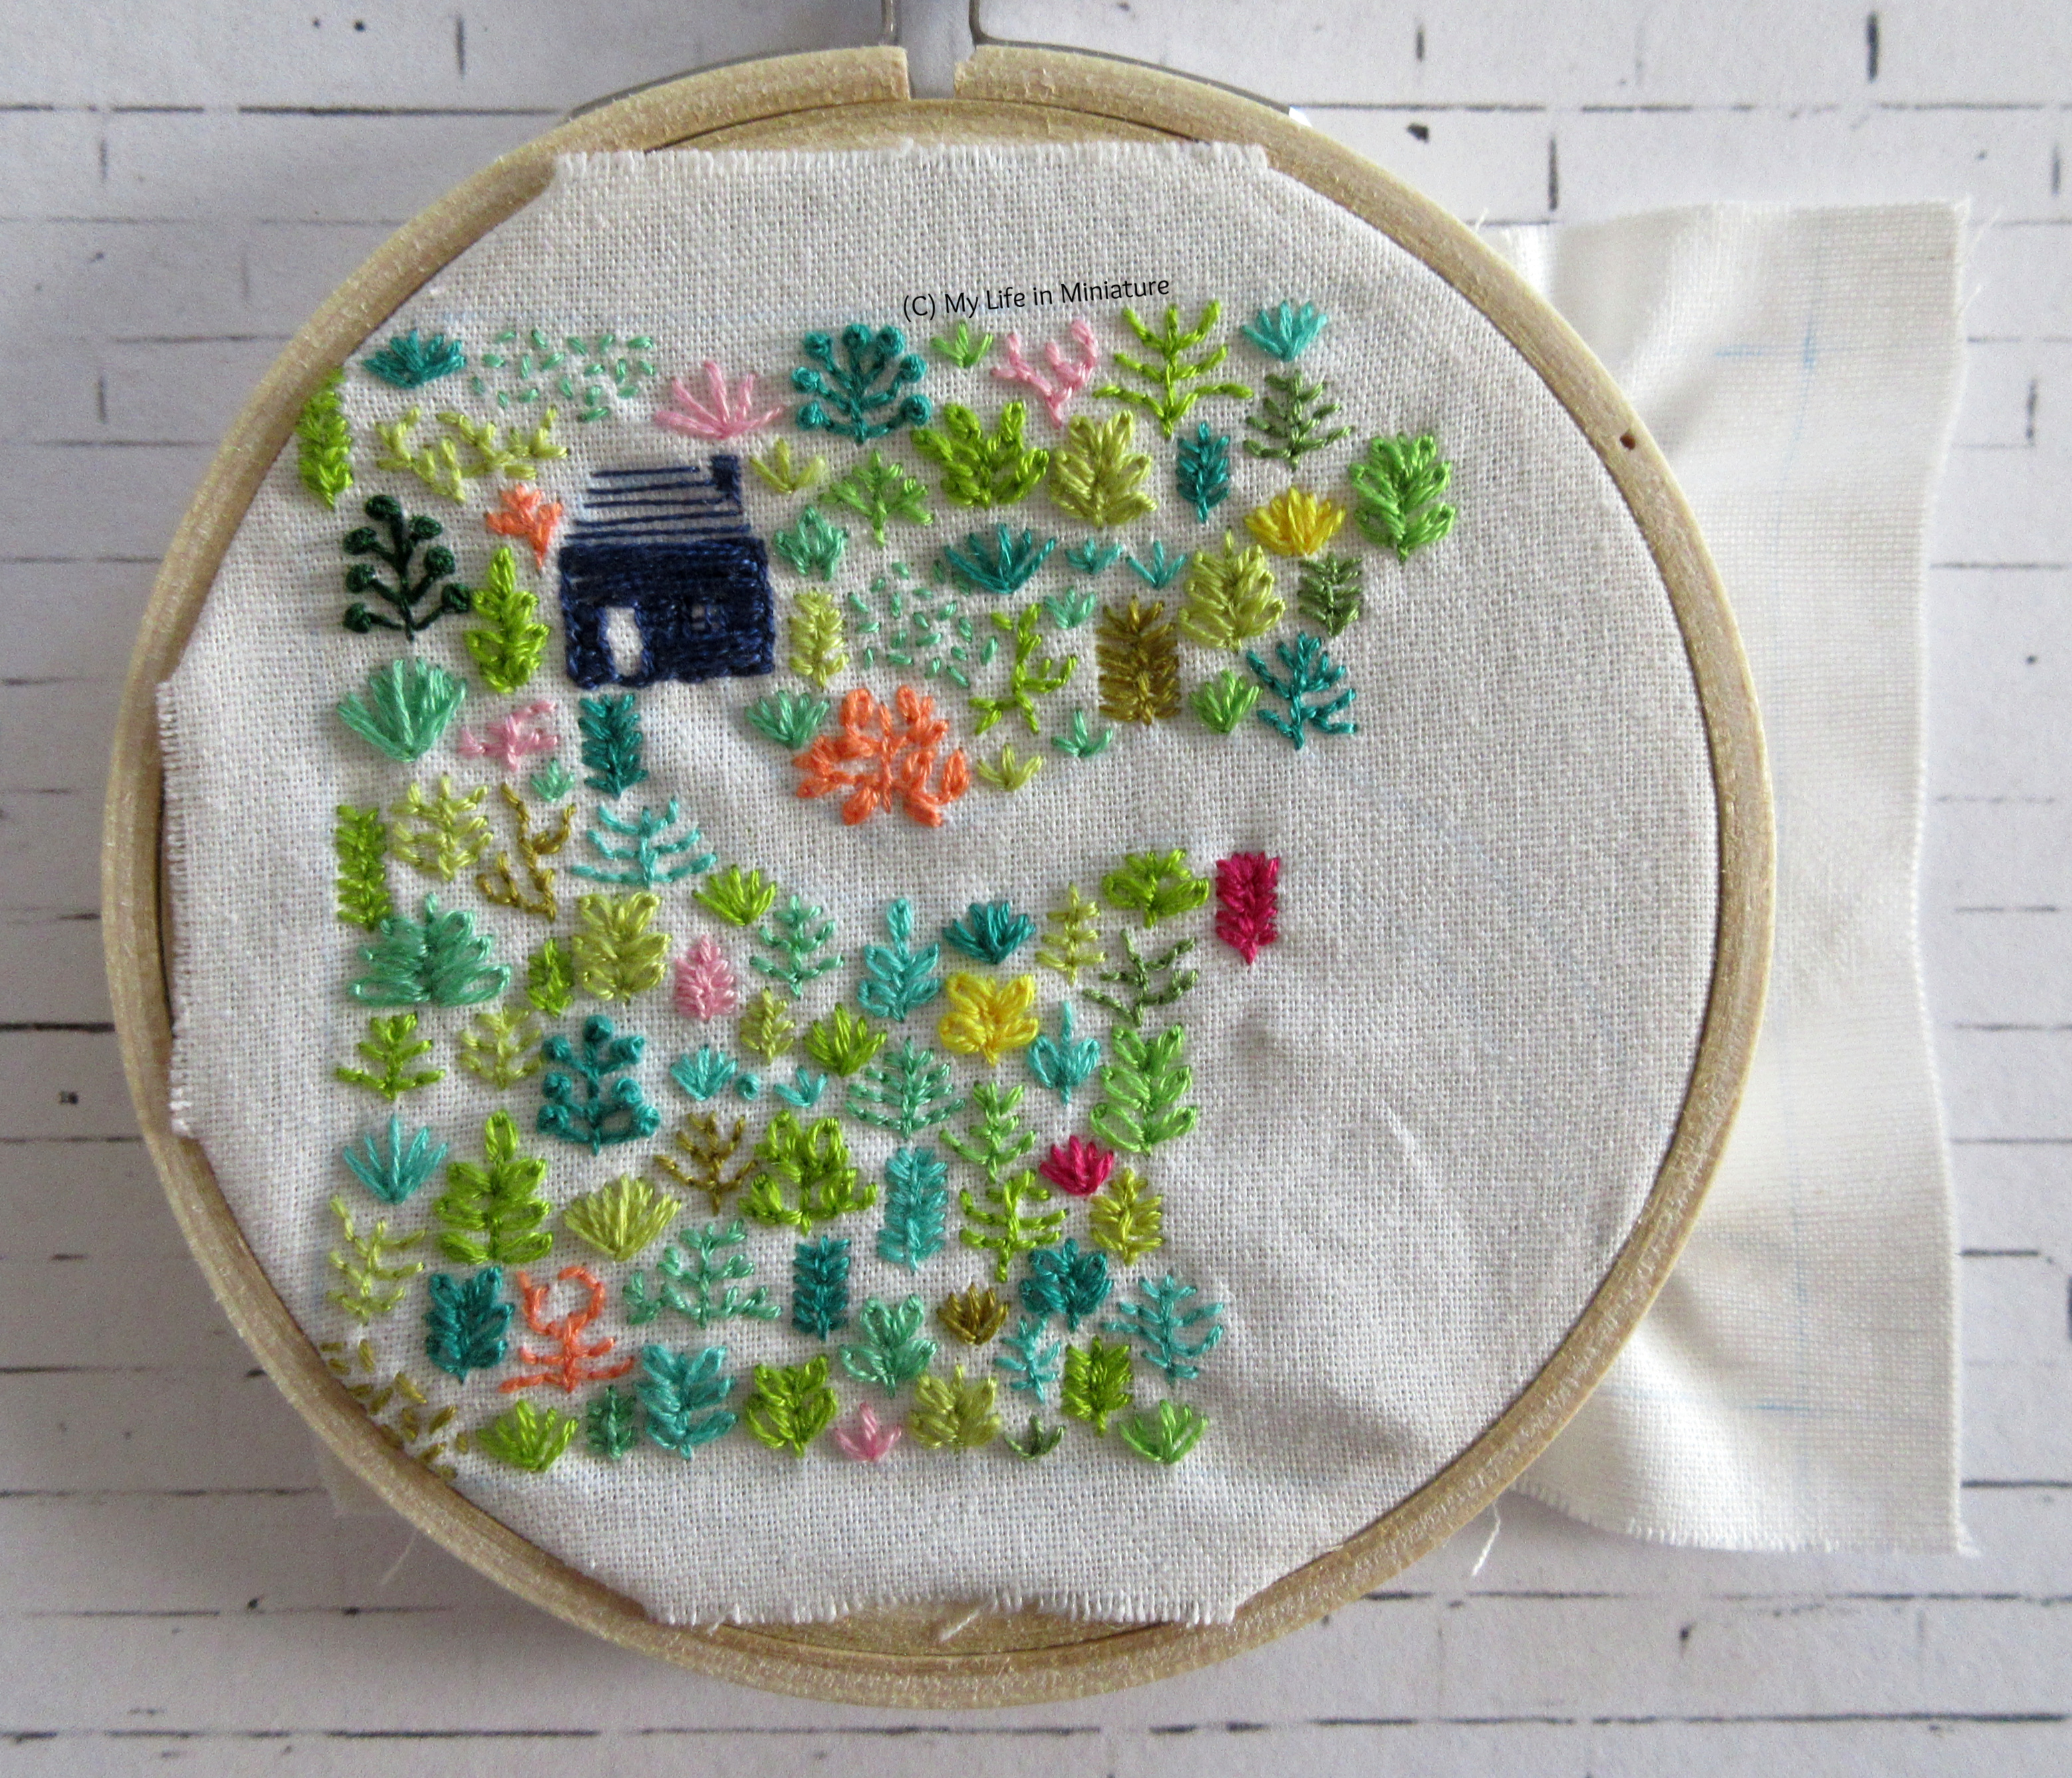 White fabric is in an embroidery hoop. Stitched on it is a small navy blue house, and an assortment of plants in different colours. The plants cover most of the fabric in the hoop, and a winding path leading from the house is visible.